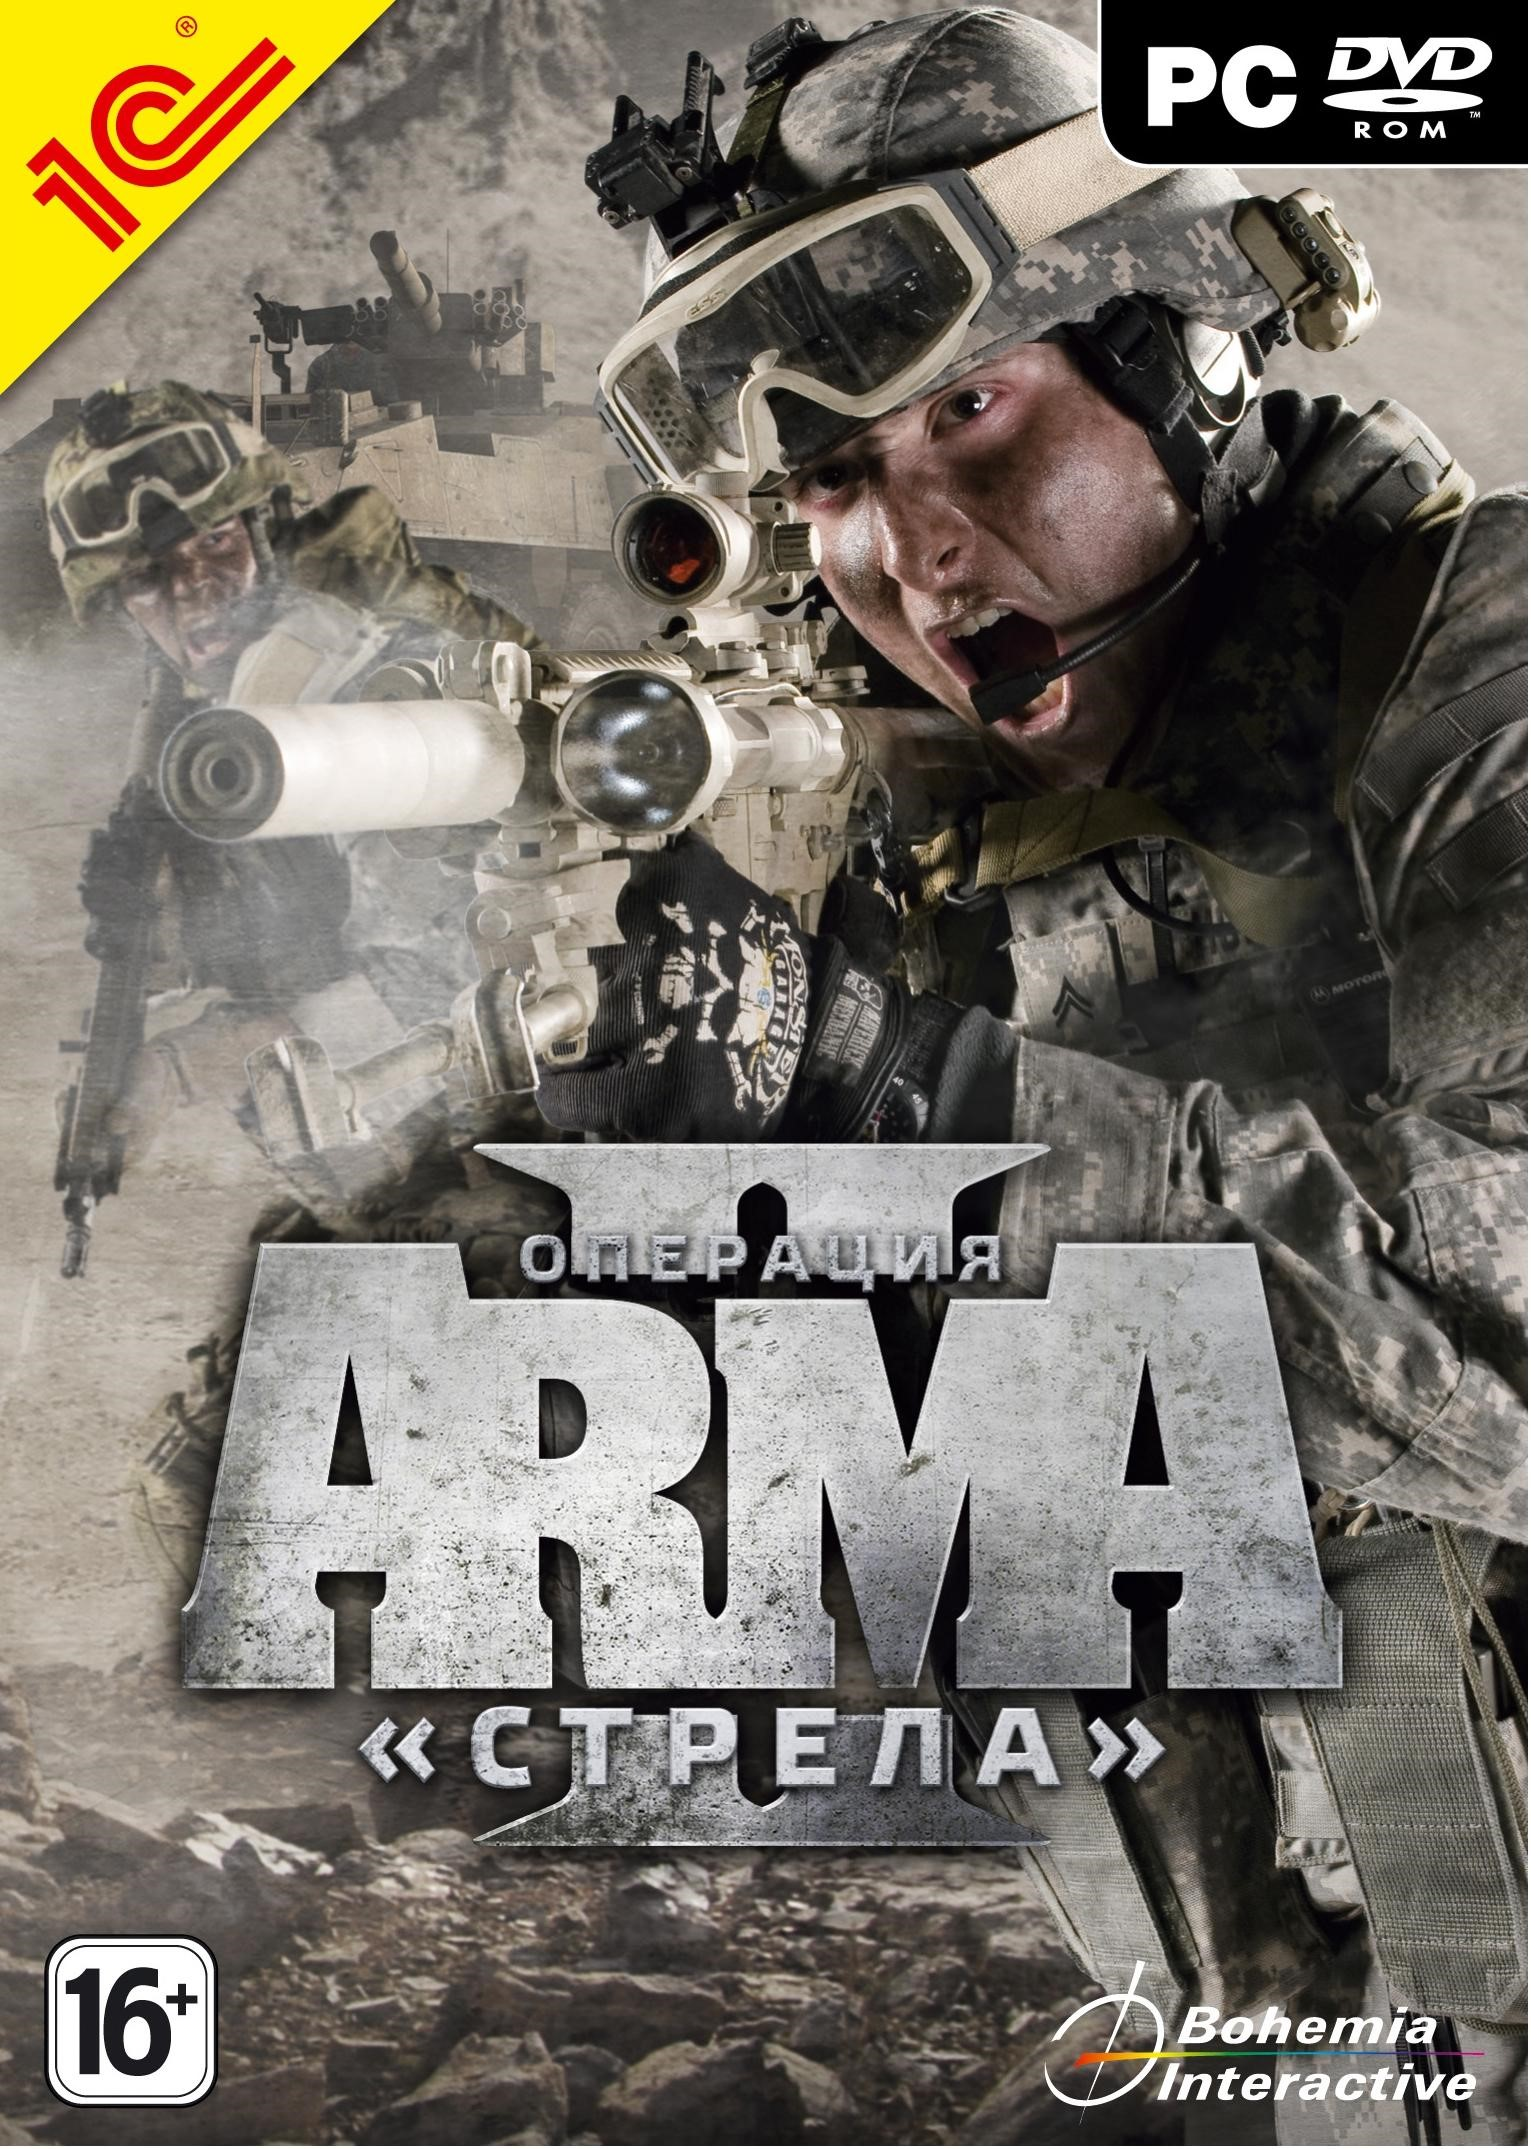 ARMA II 2 : ОПЕРАЦИЯ «СТРЕЛА»  (STEAM Key) Region Free